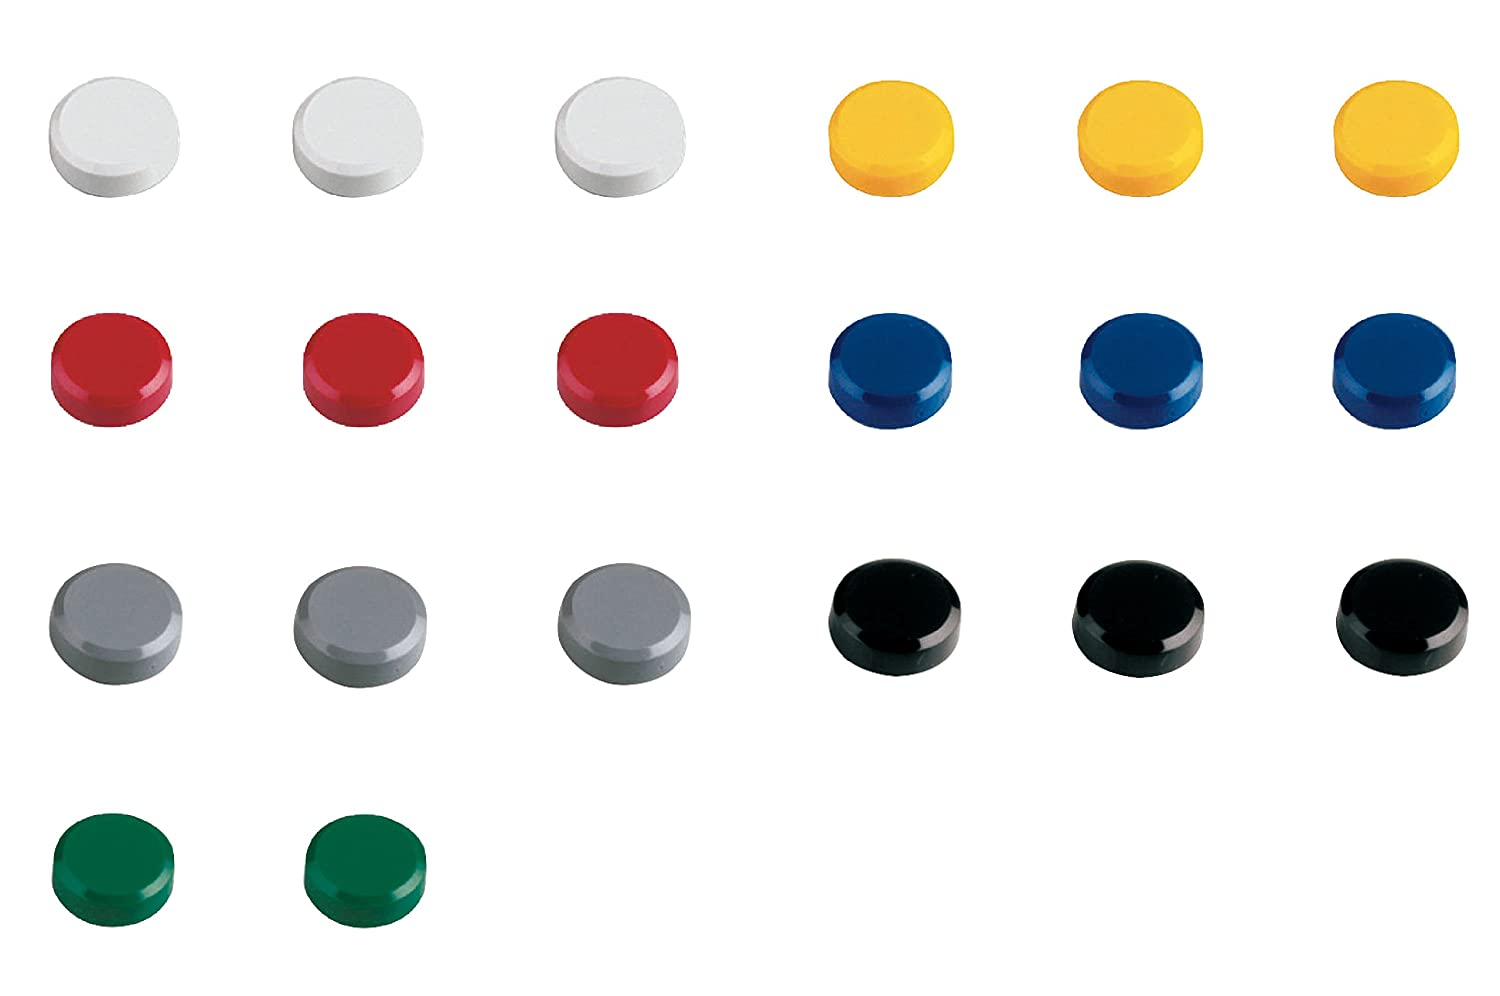 Black Pack of 20 MAUL 20 mm 0.3 kg Maulpro Round Magnet for Whiteboards